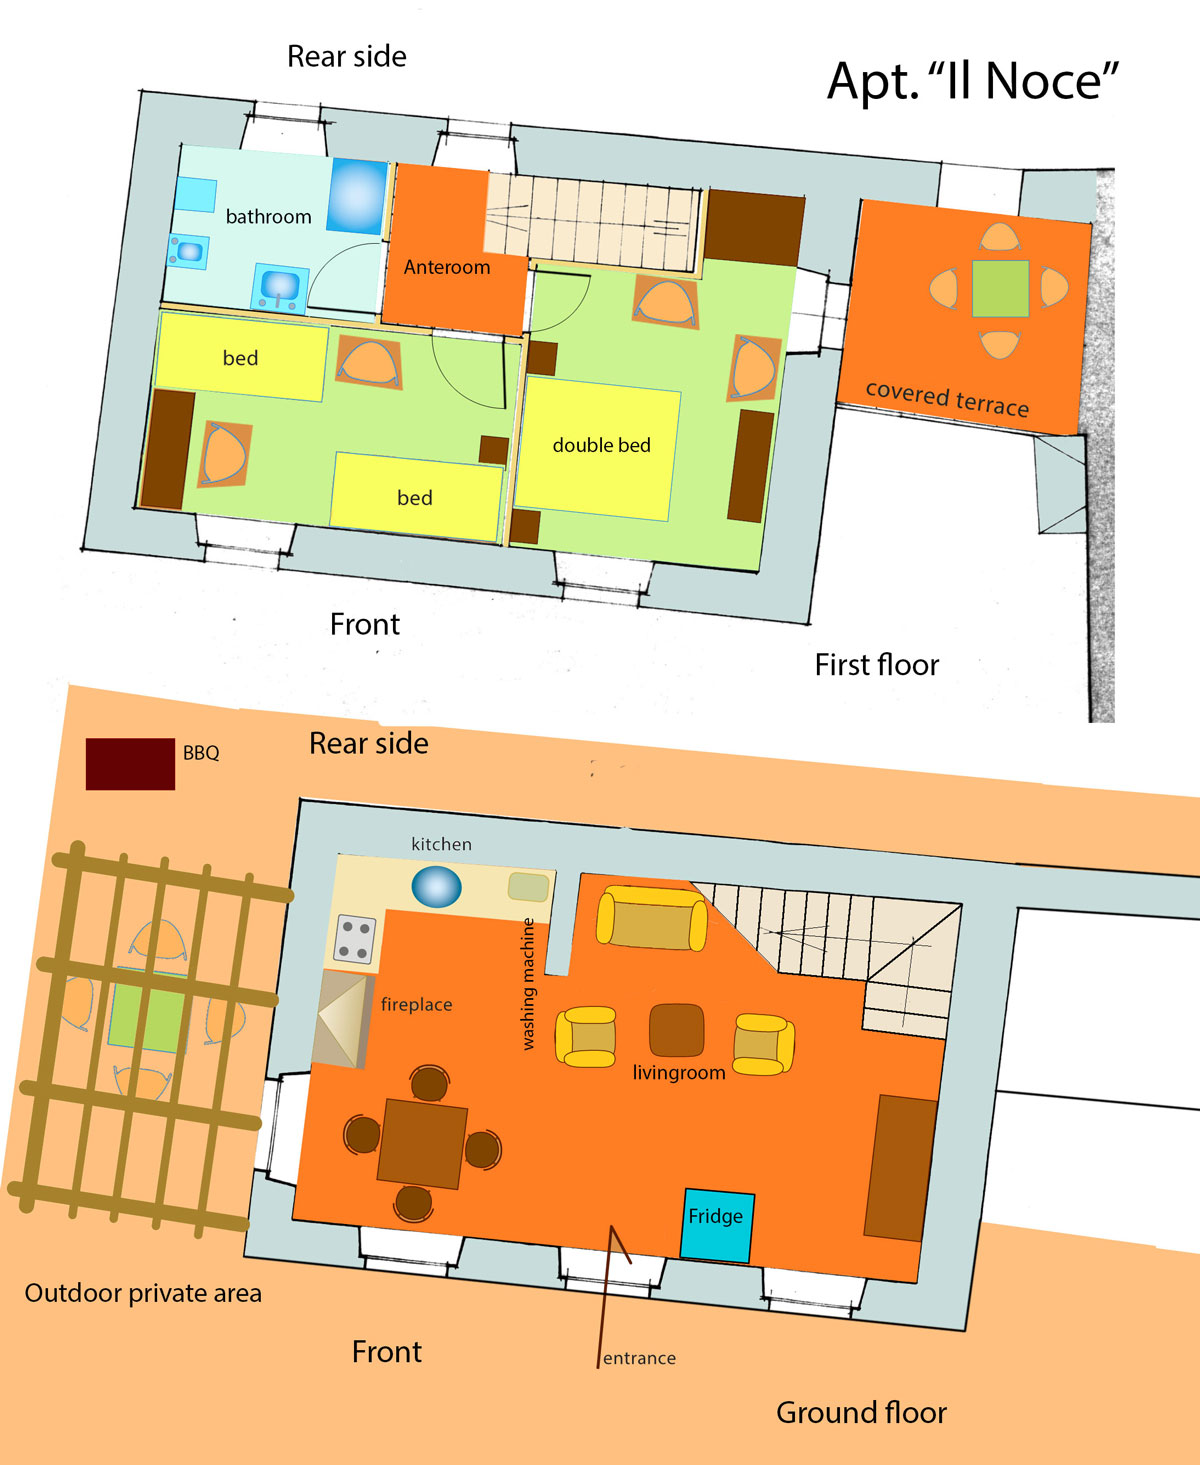 layout of the apt1